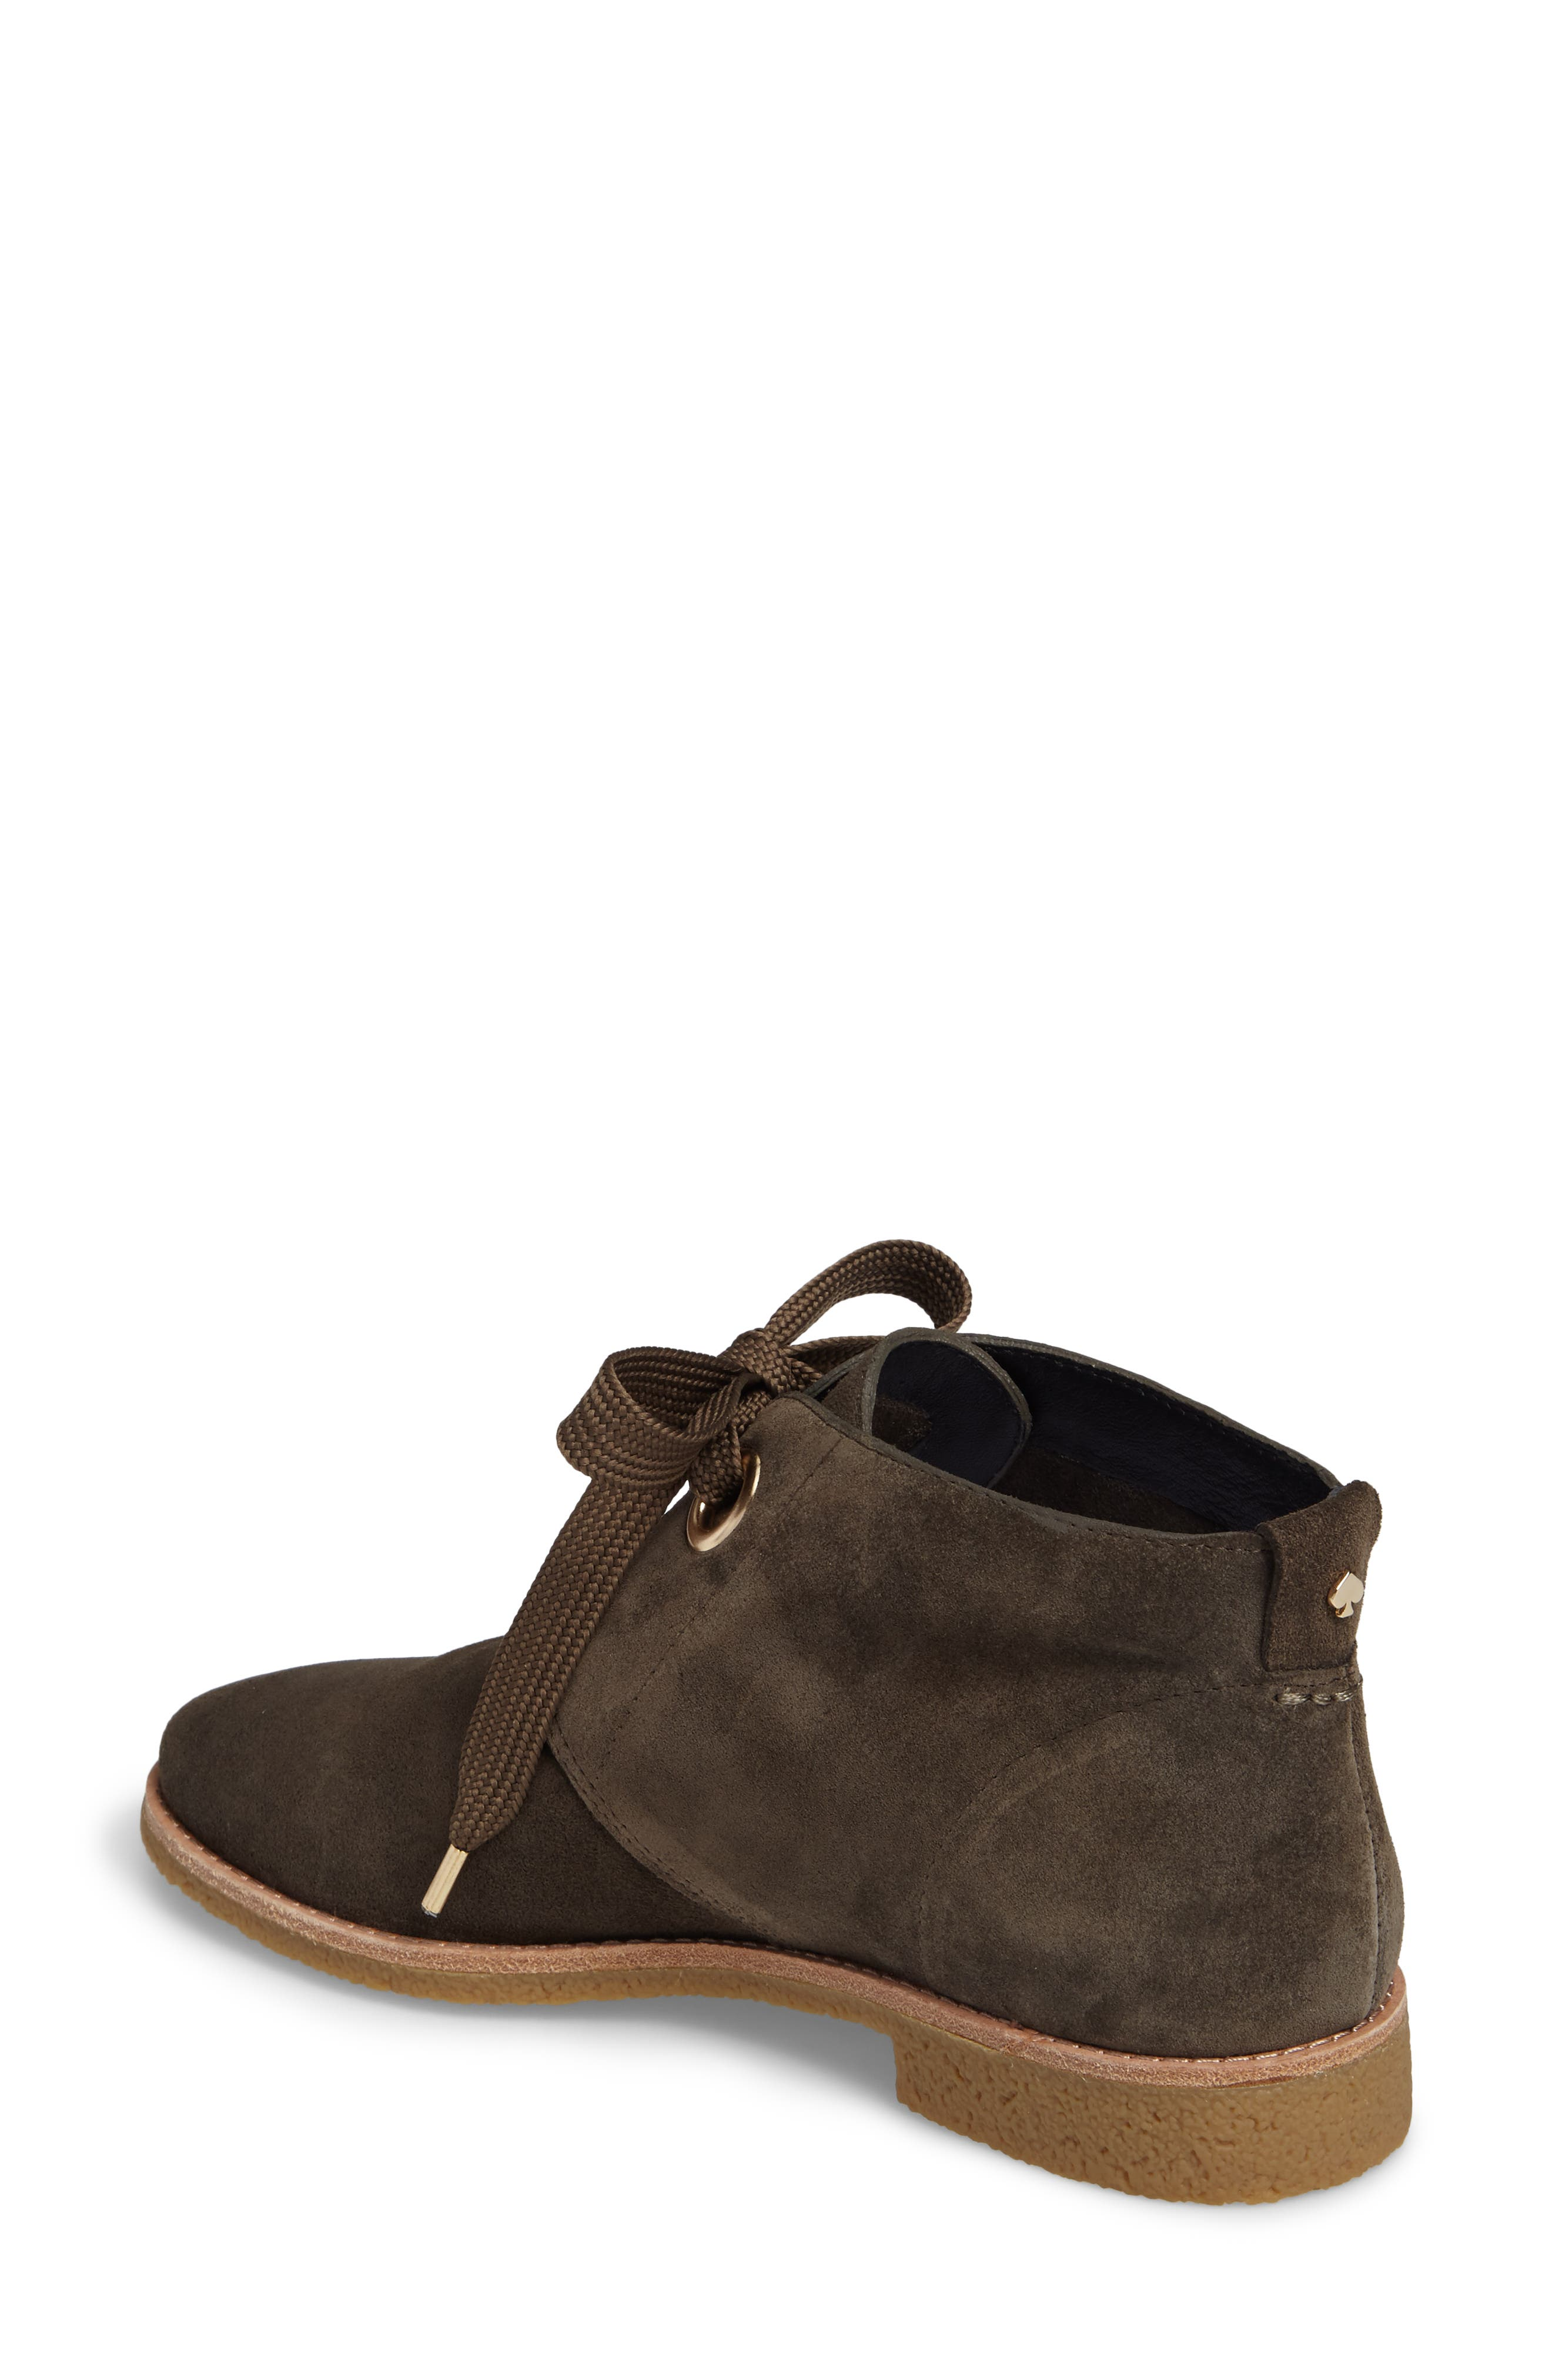 barrow chukka boot,                             Alternate thumbnail 2, color,                             Olive Green Suede